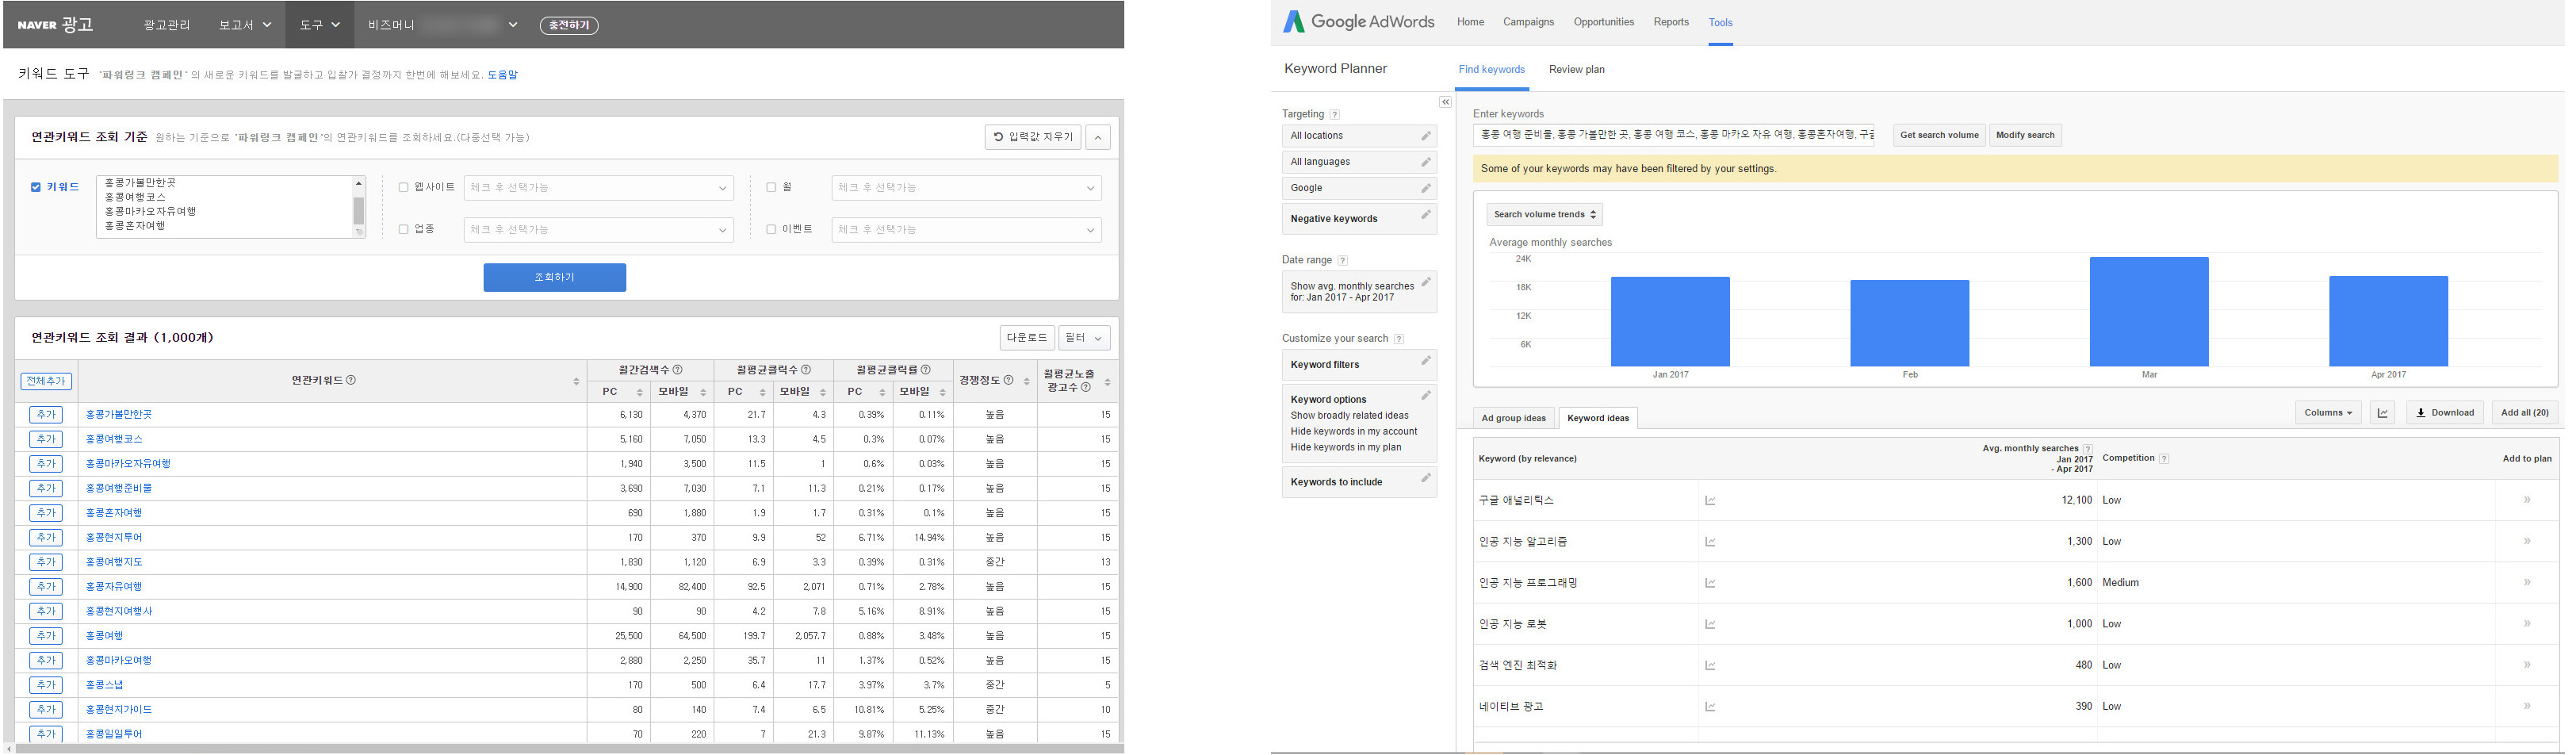 Naver vs Google Keyword Tool Interface